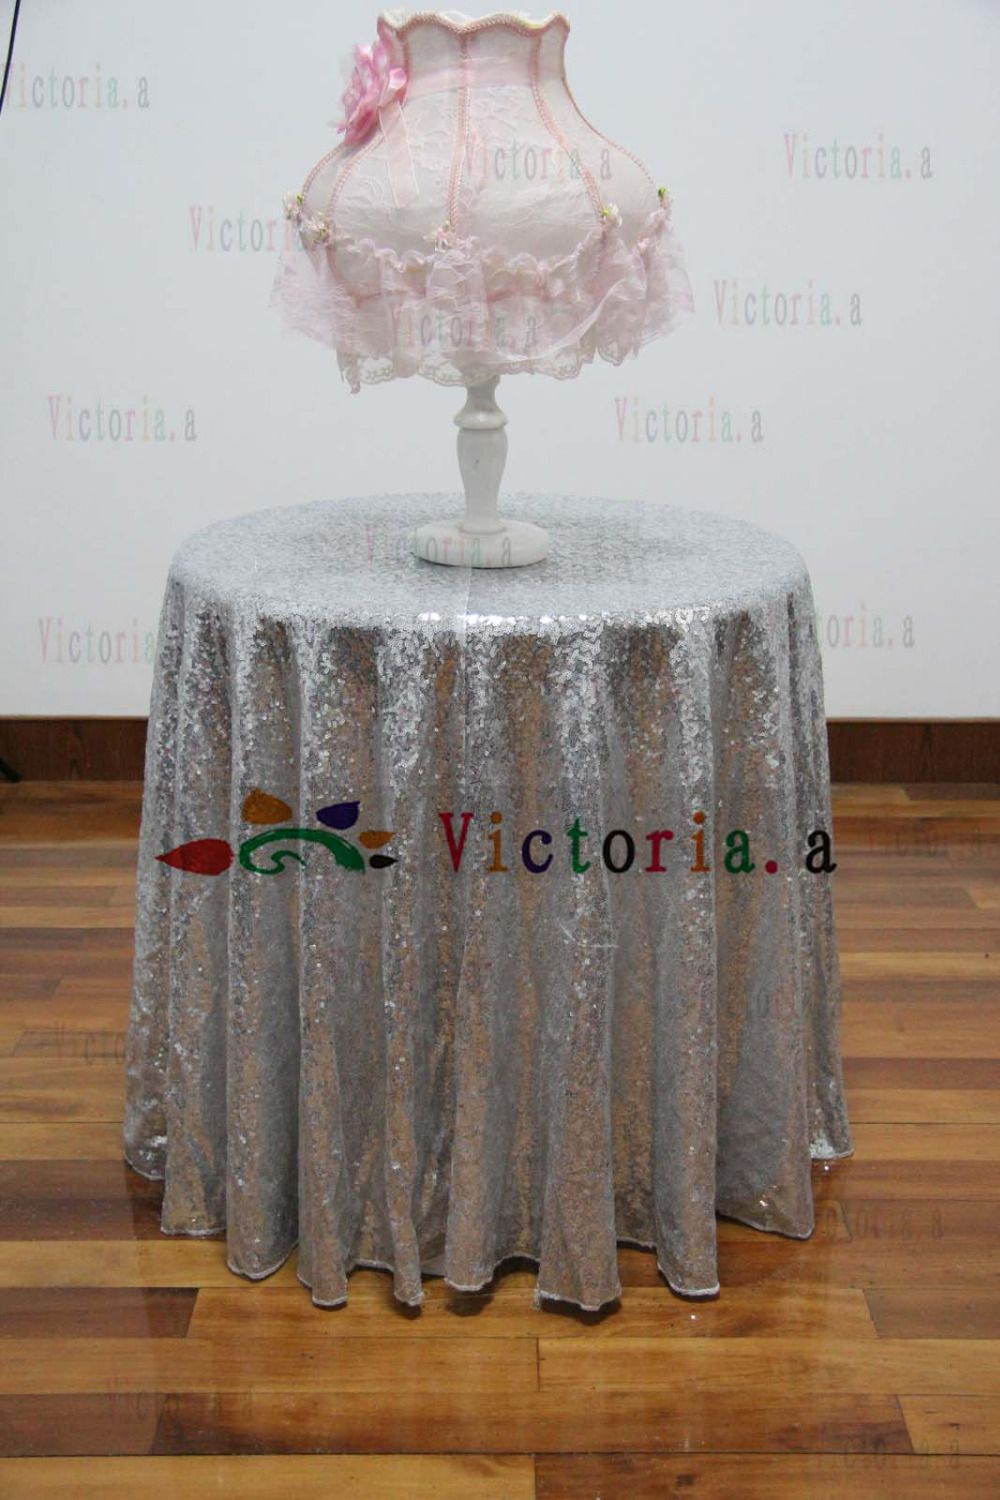 Superior 60 Inch Round Silver Sequin TableCloth Wedding Beautiful Silver Sequin Table  Cloth / Overlay /Cover